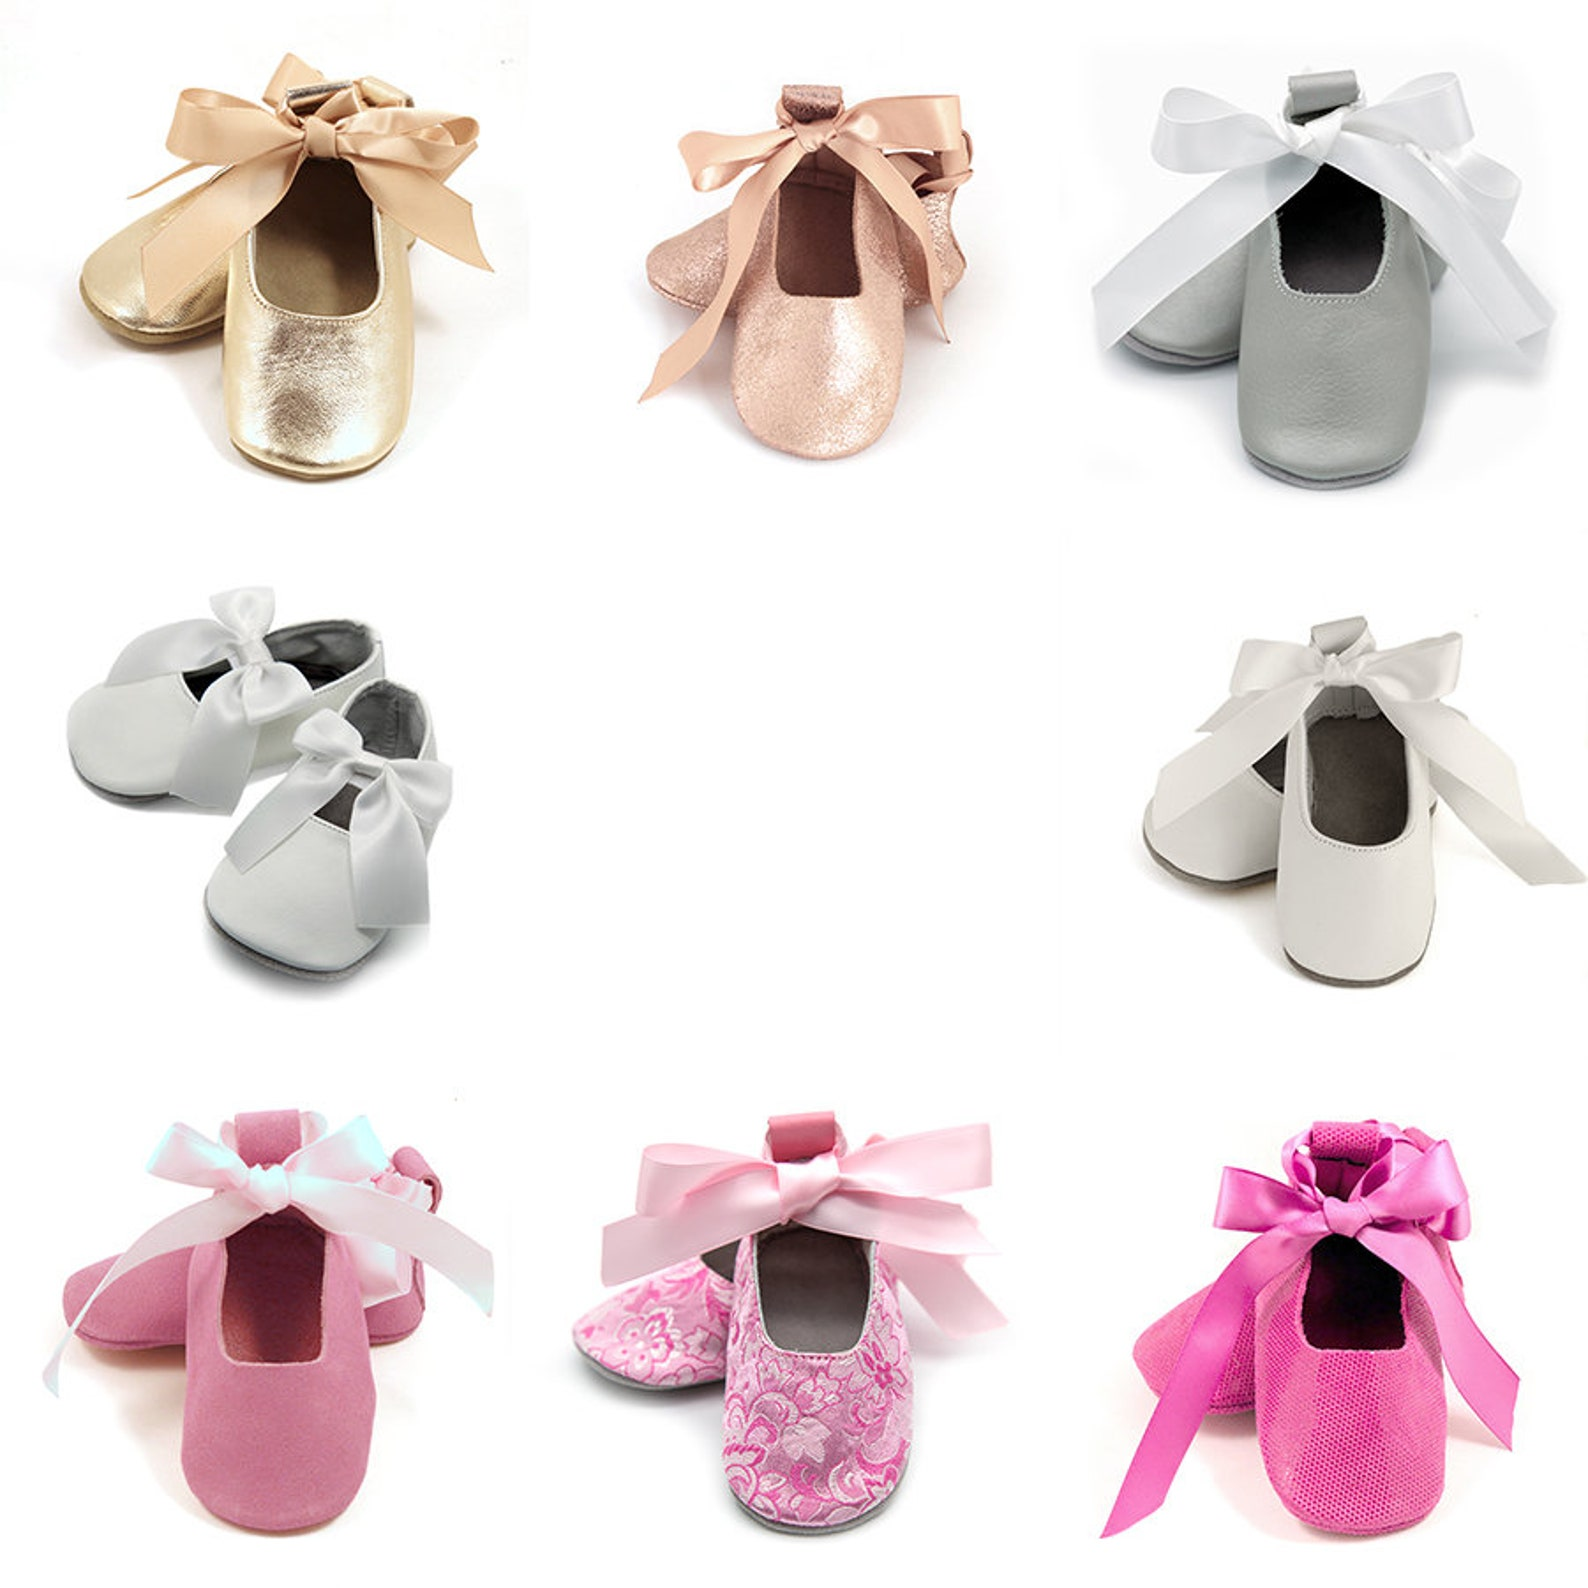 flower girl shoes, ballet flats for toddler or kids, glitter leather shoes ballet slippers for princess or fairy birthday girl o